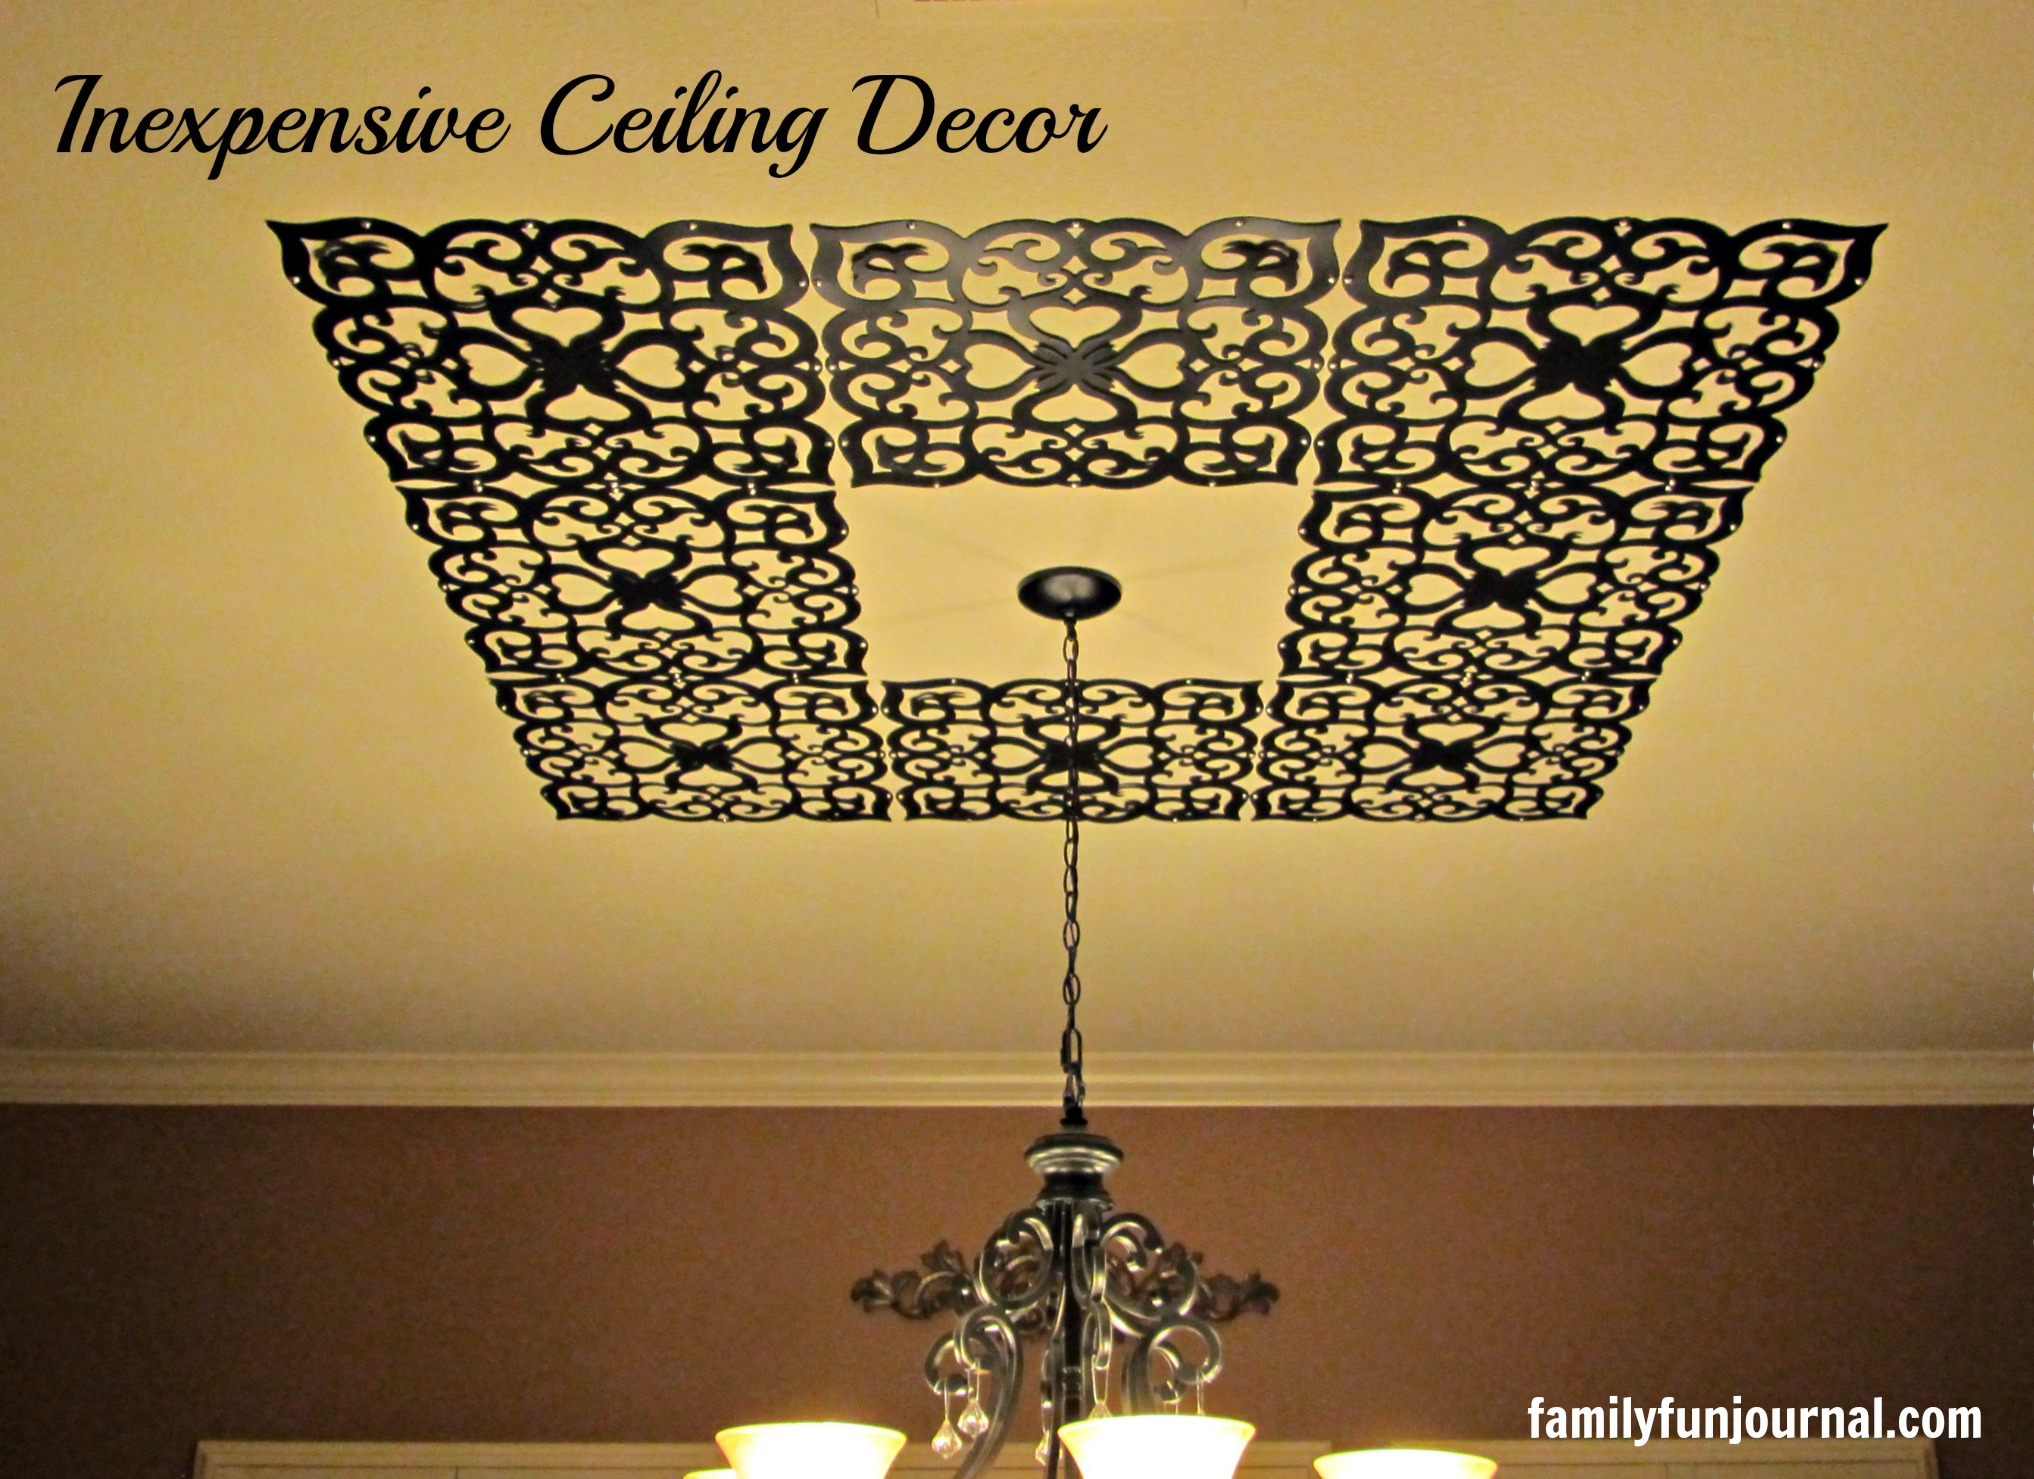 Container Store Ceiling Decor  Family Fun Journal